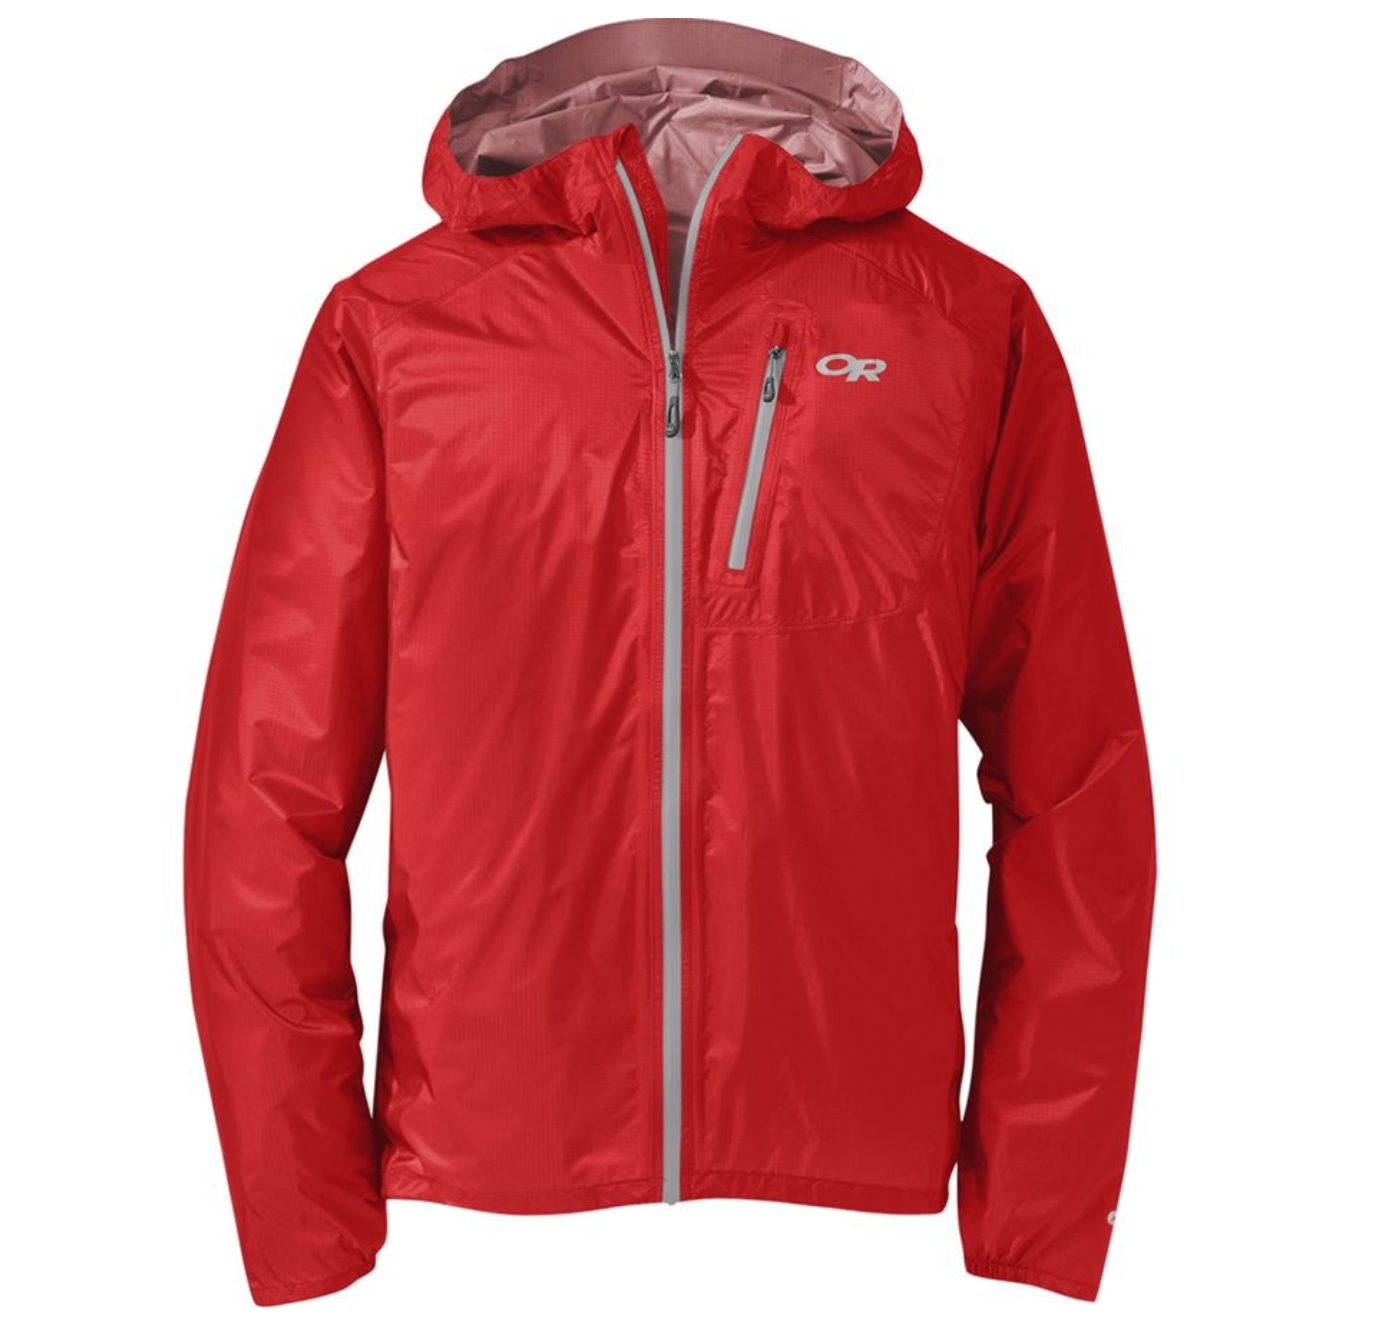 backcountry post-cyber sale